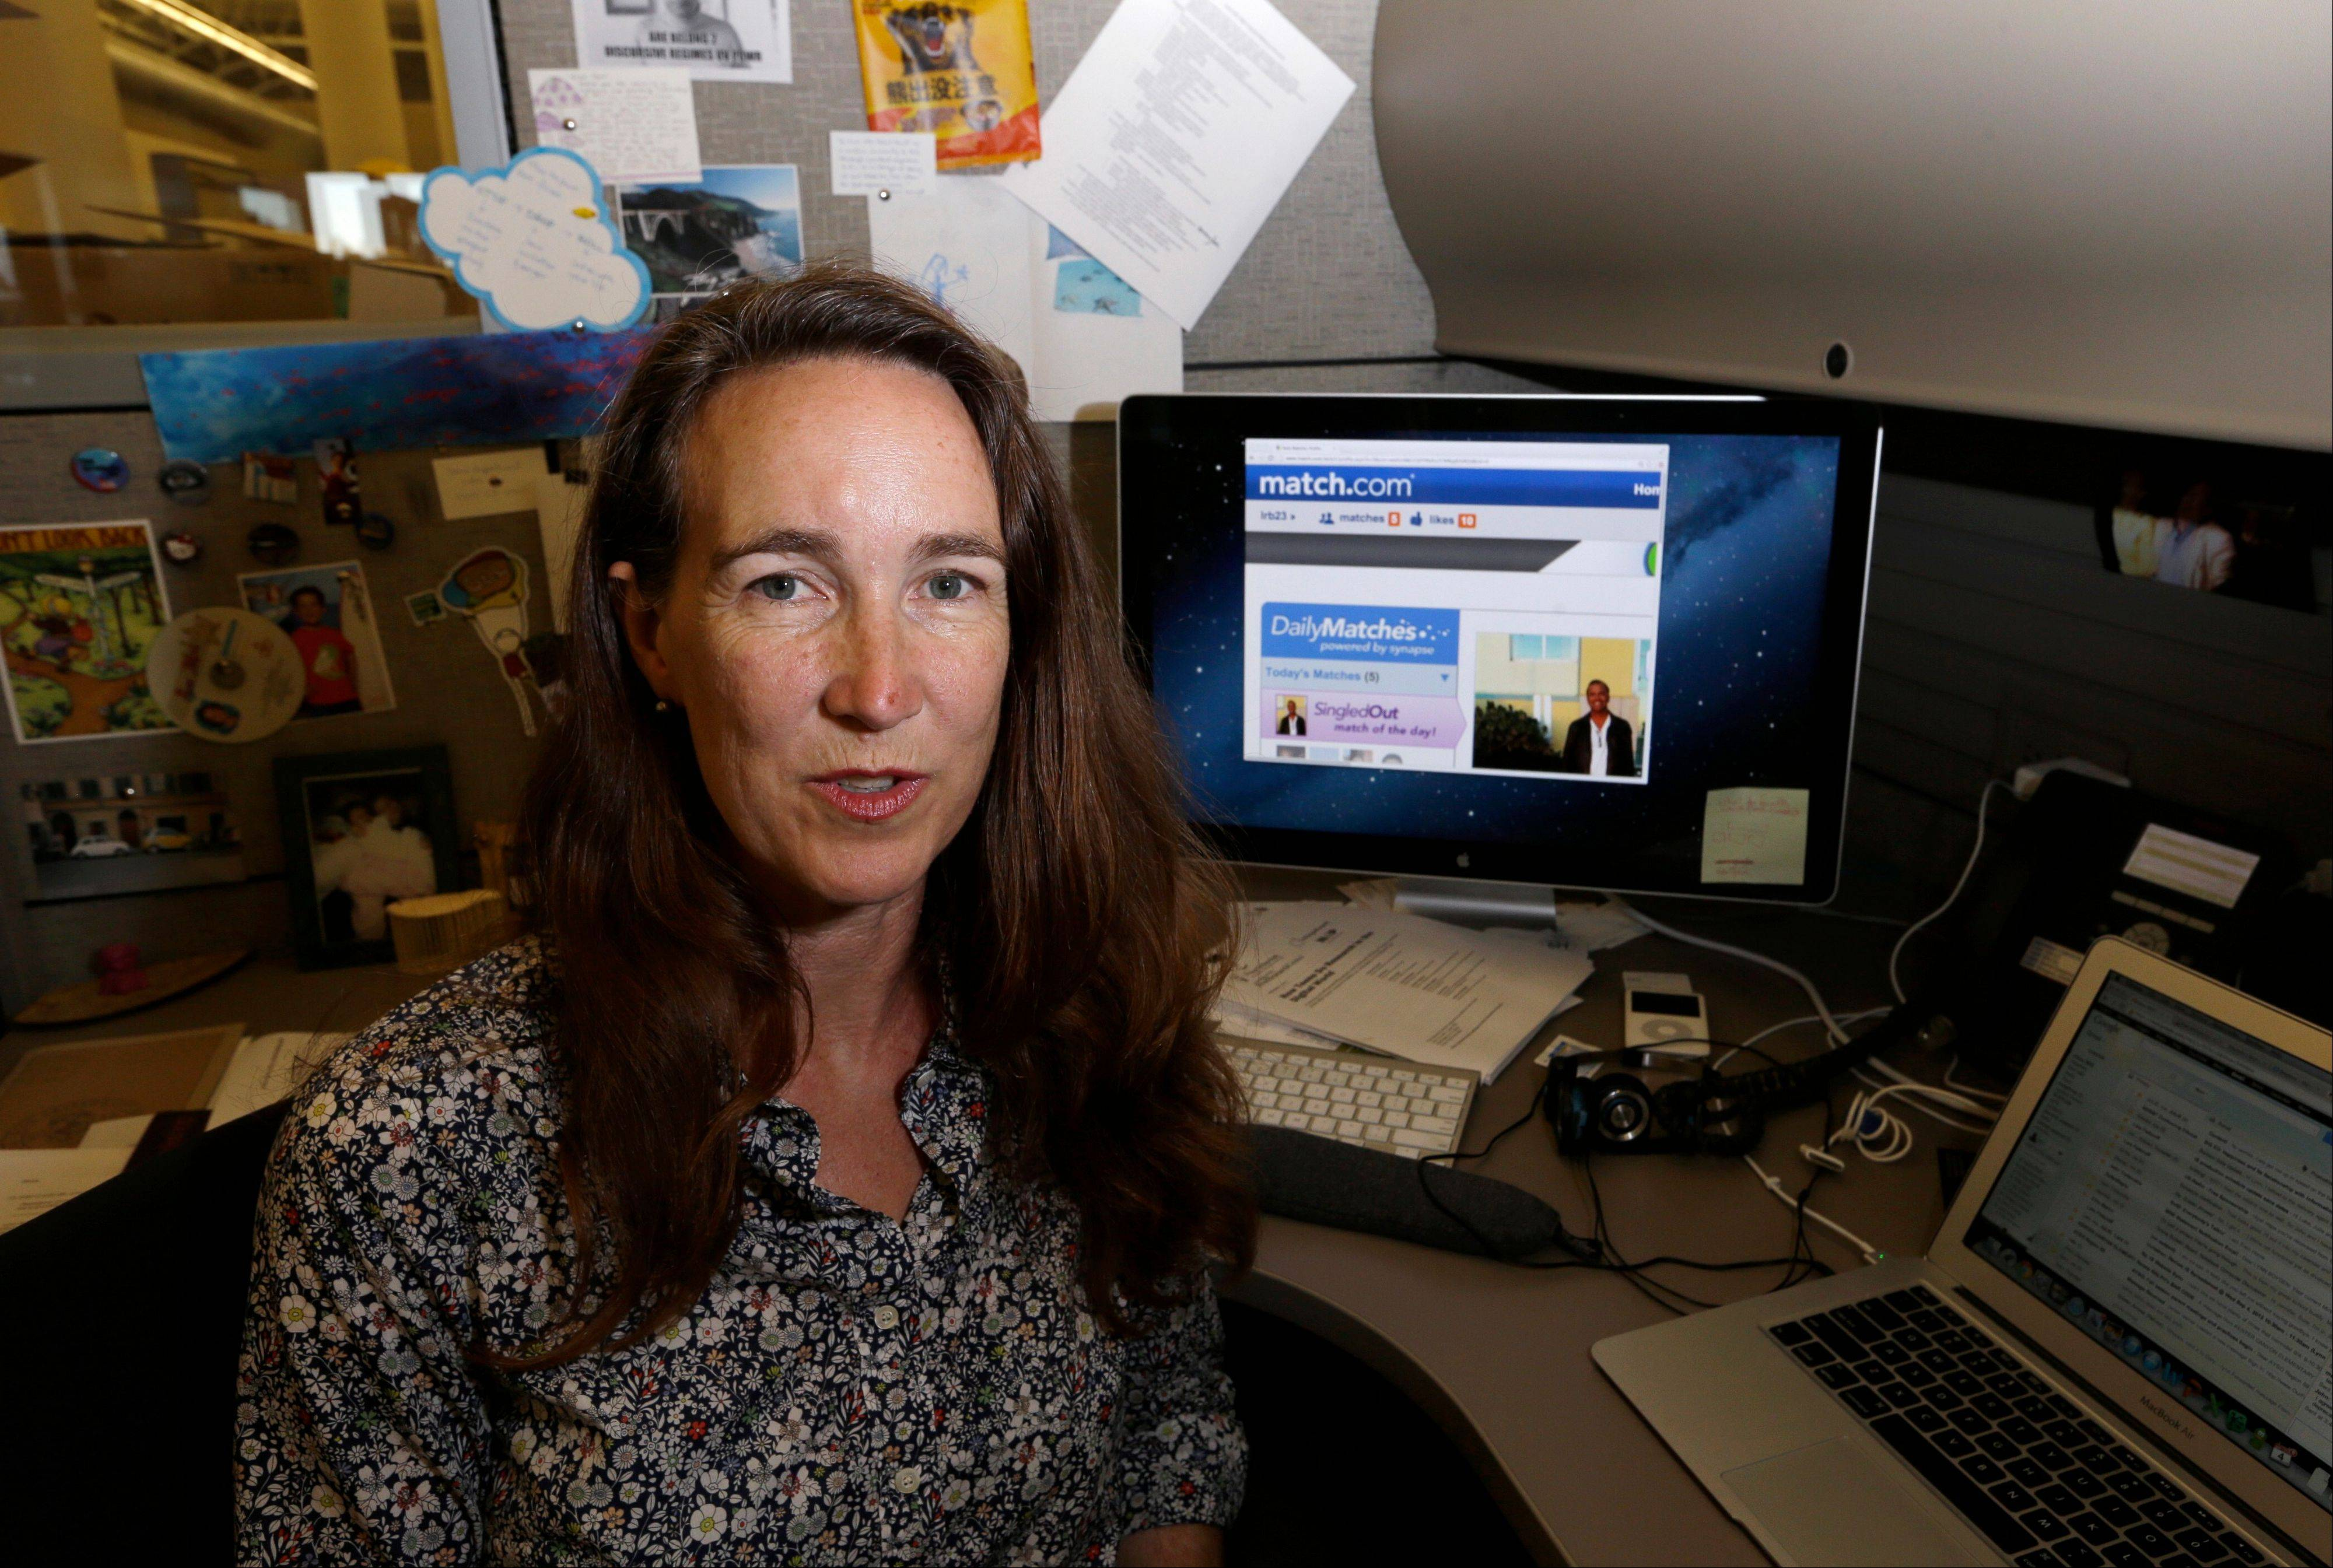 Lynn Boyden, an information architect in web services at the University of Southern California, says she has developed two identities online: a public one for her professional life and a private one that only a few close friends can access. She tries to block advertising trackers when she can and limits what personal data might wind up on public sites.